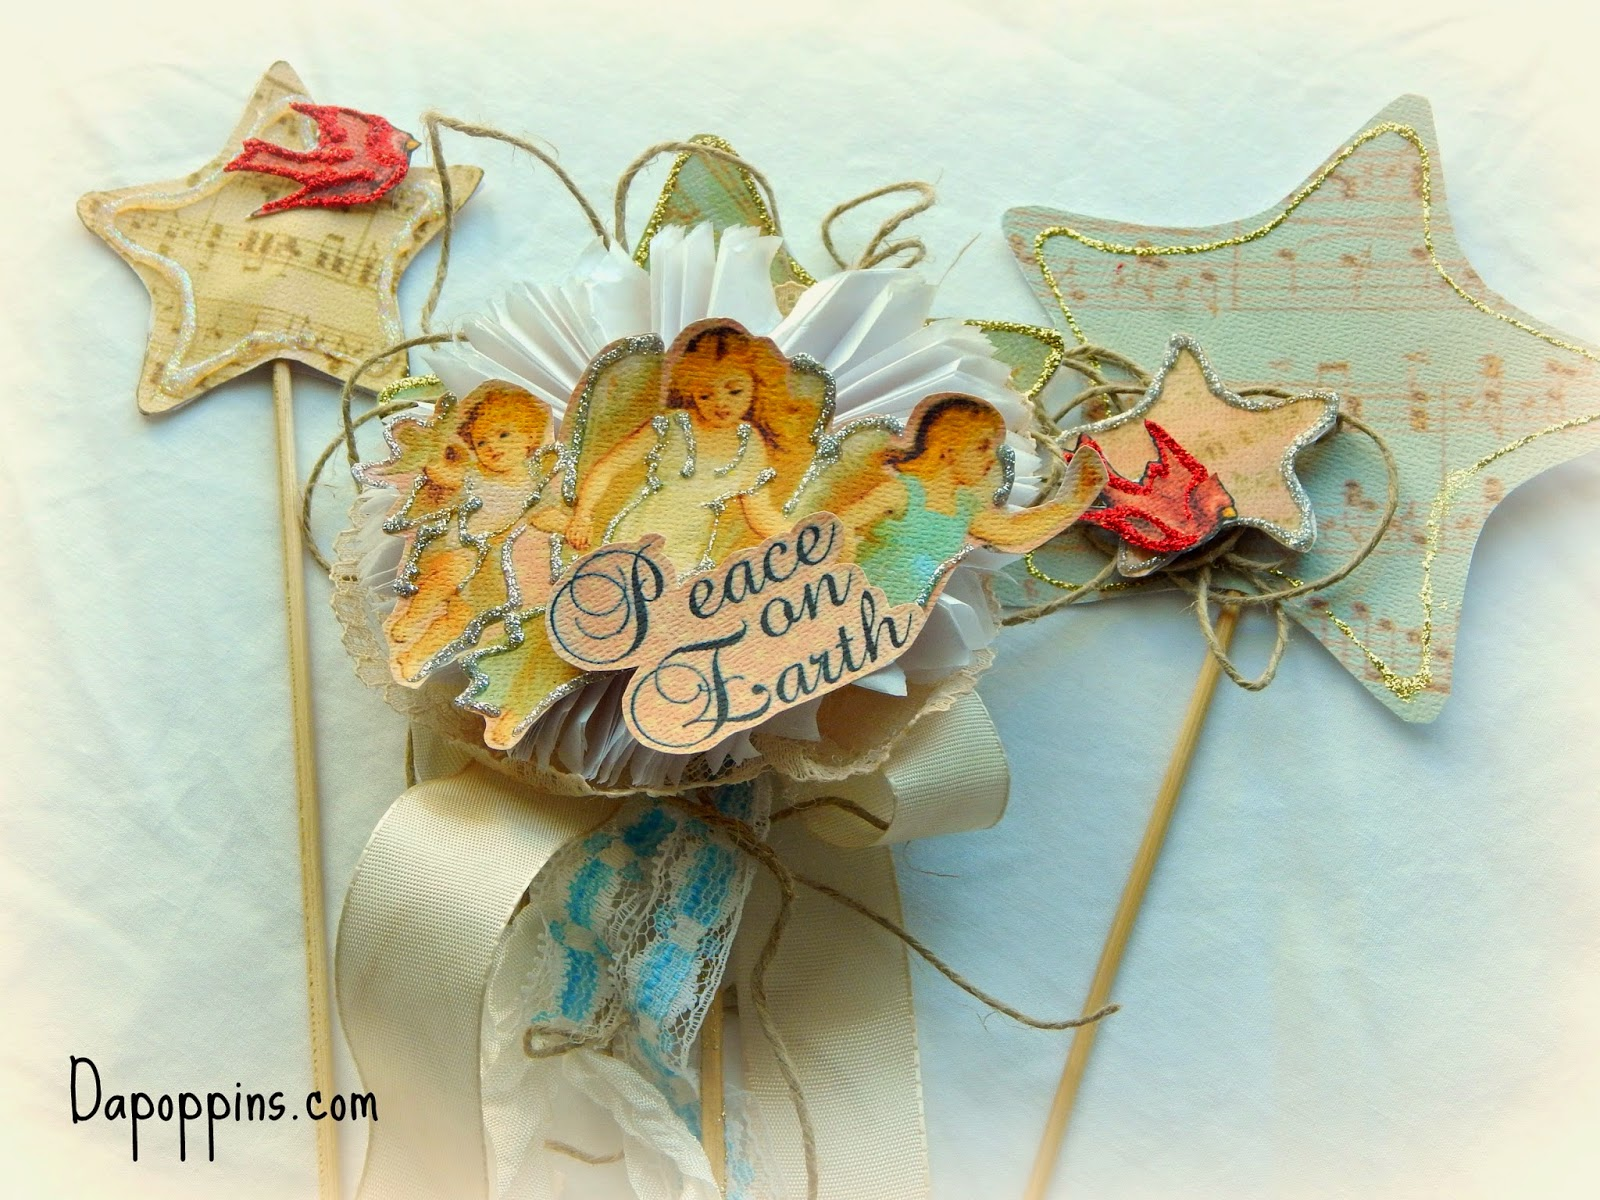 Shabby Chic, Scrapbooking, Paper Play, Dapoppins Creations